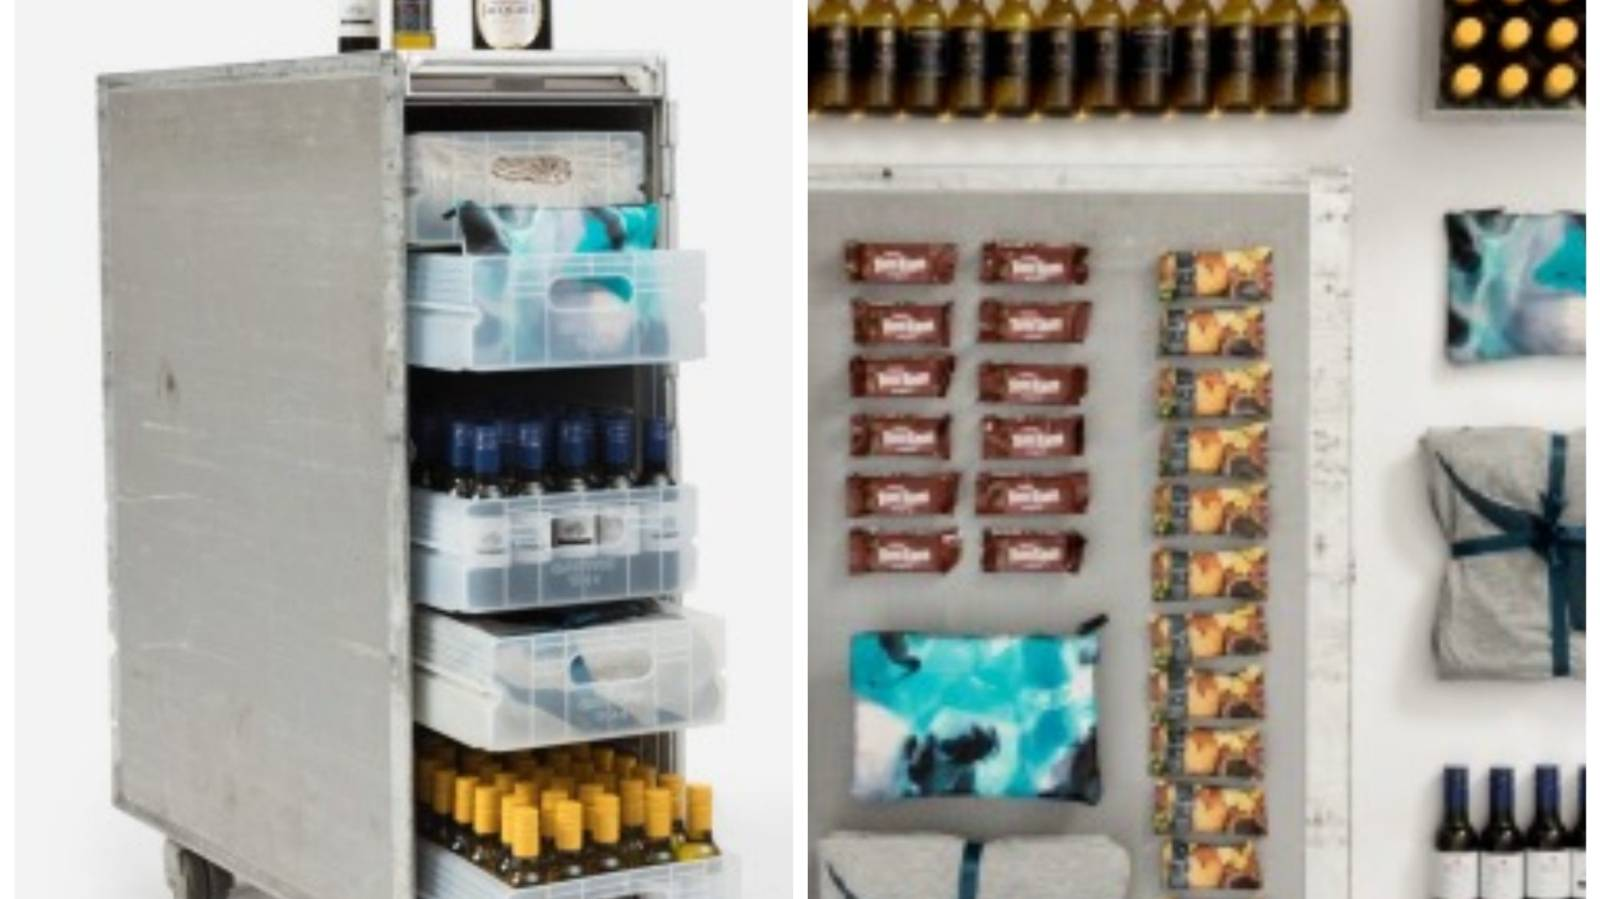 Get off your trolley! Qantas sells fully stocked drinks carts